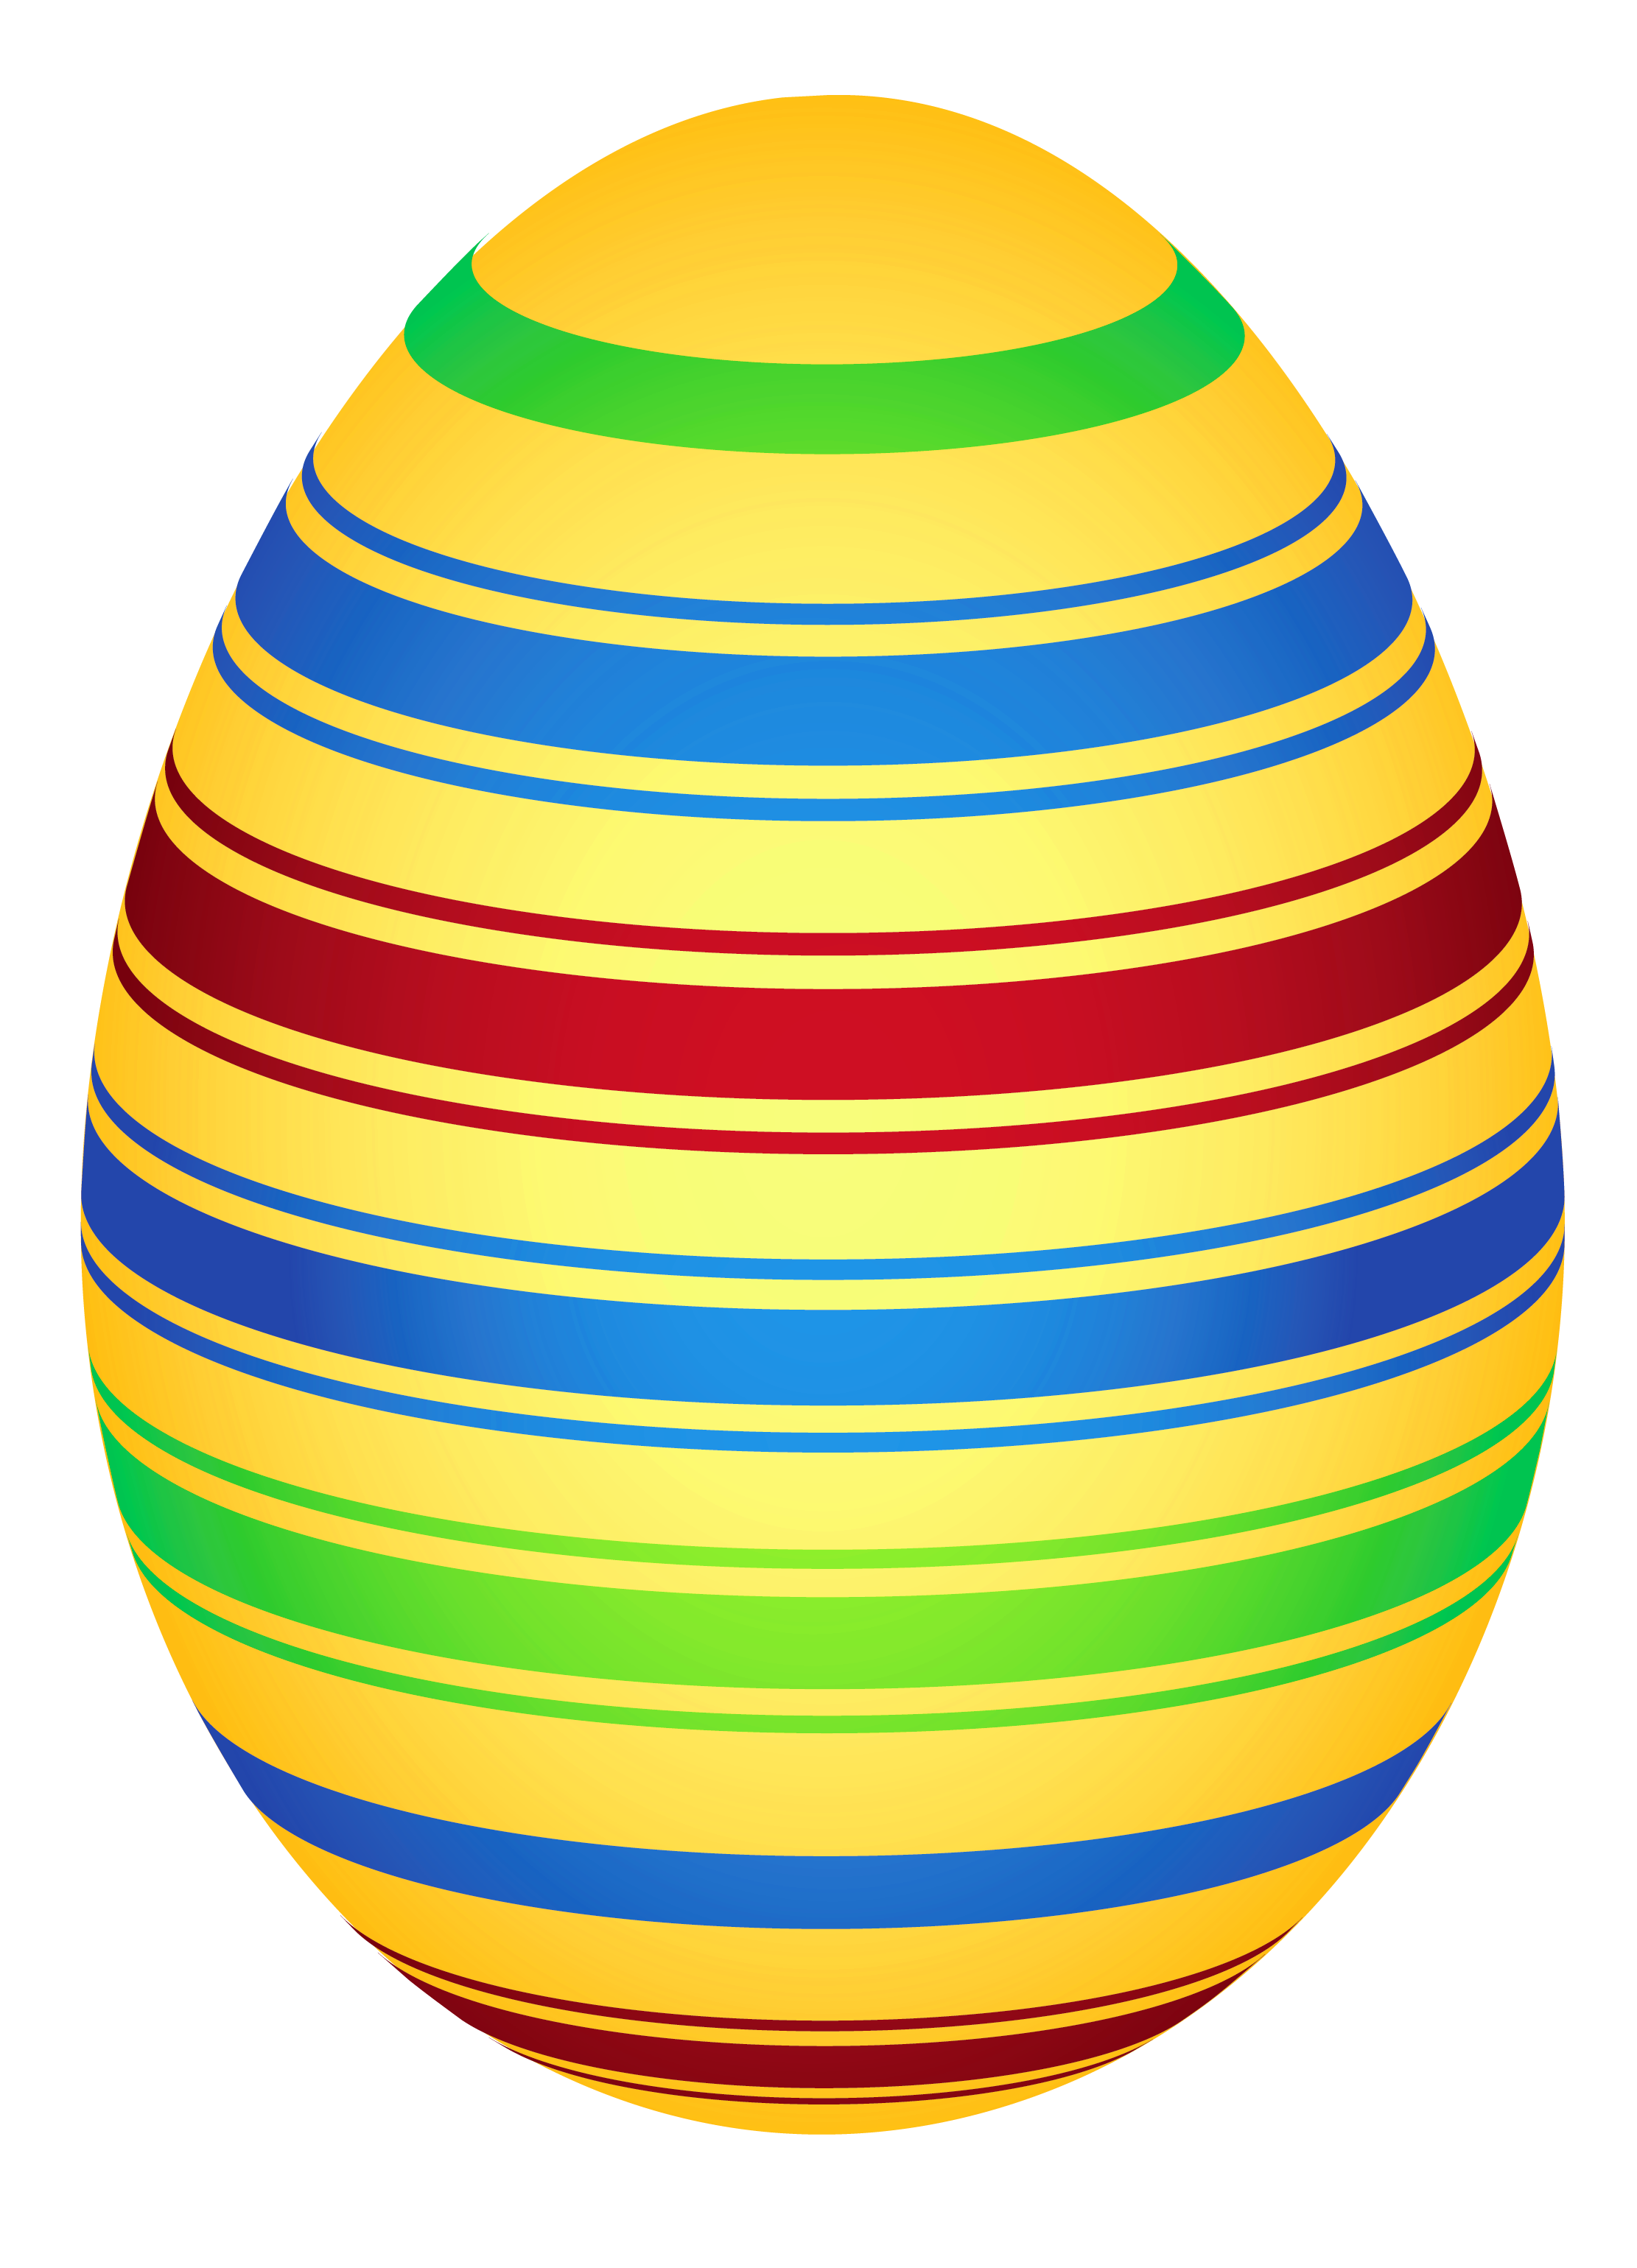 Yellow Colorful Easter Egg PNG Clipairt Picture | Wielkanoc ... banner free download